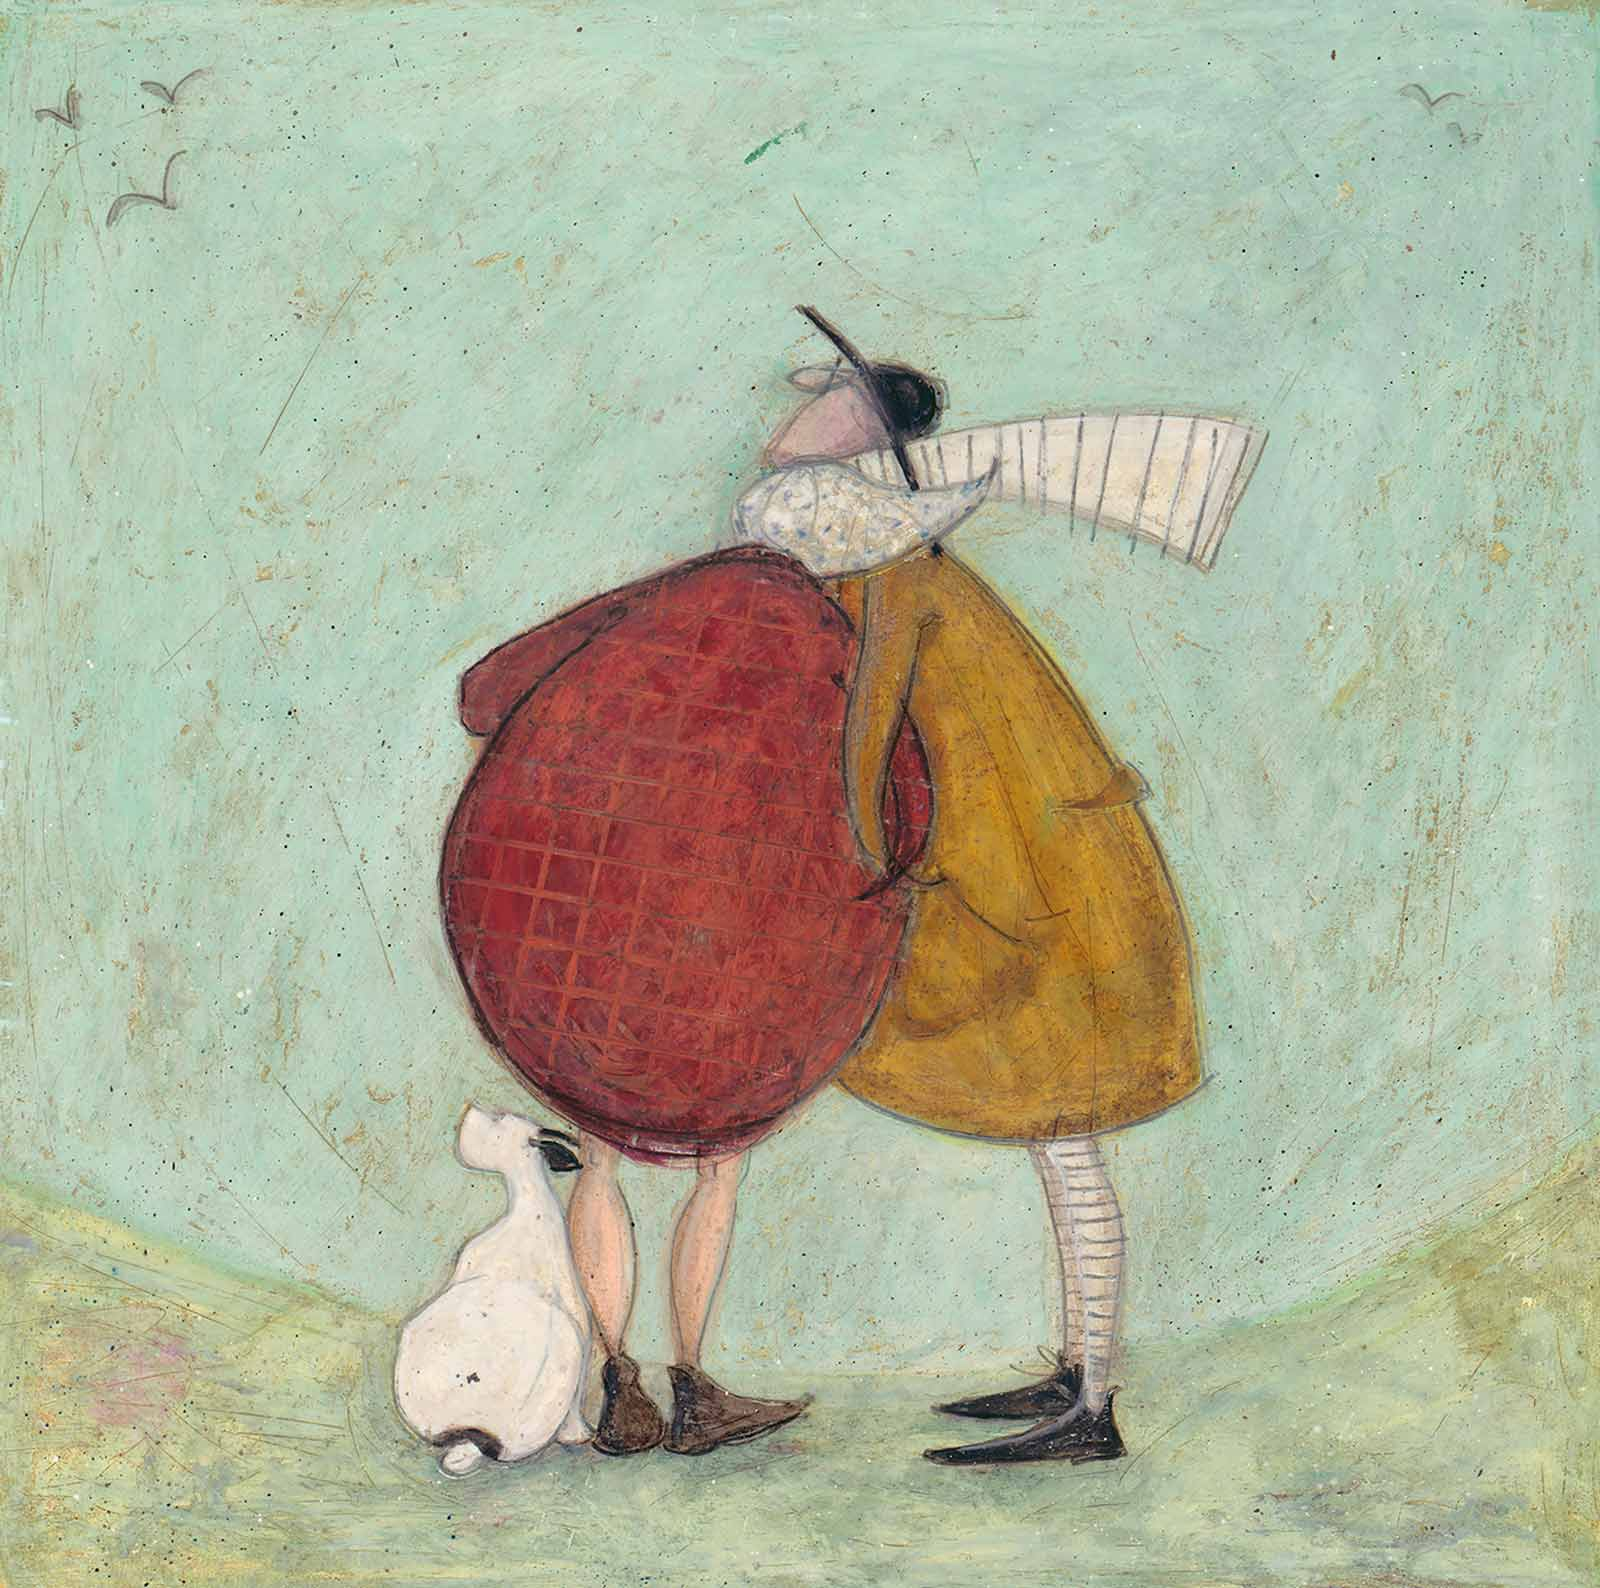 We Have All We Need, Sam Toft